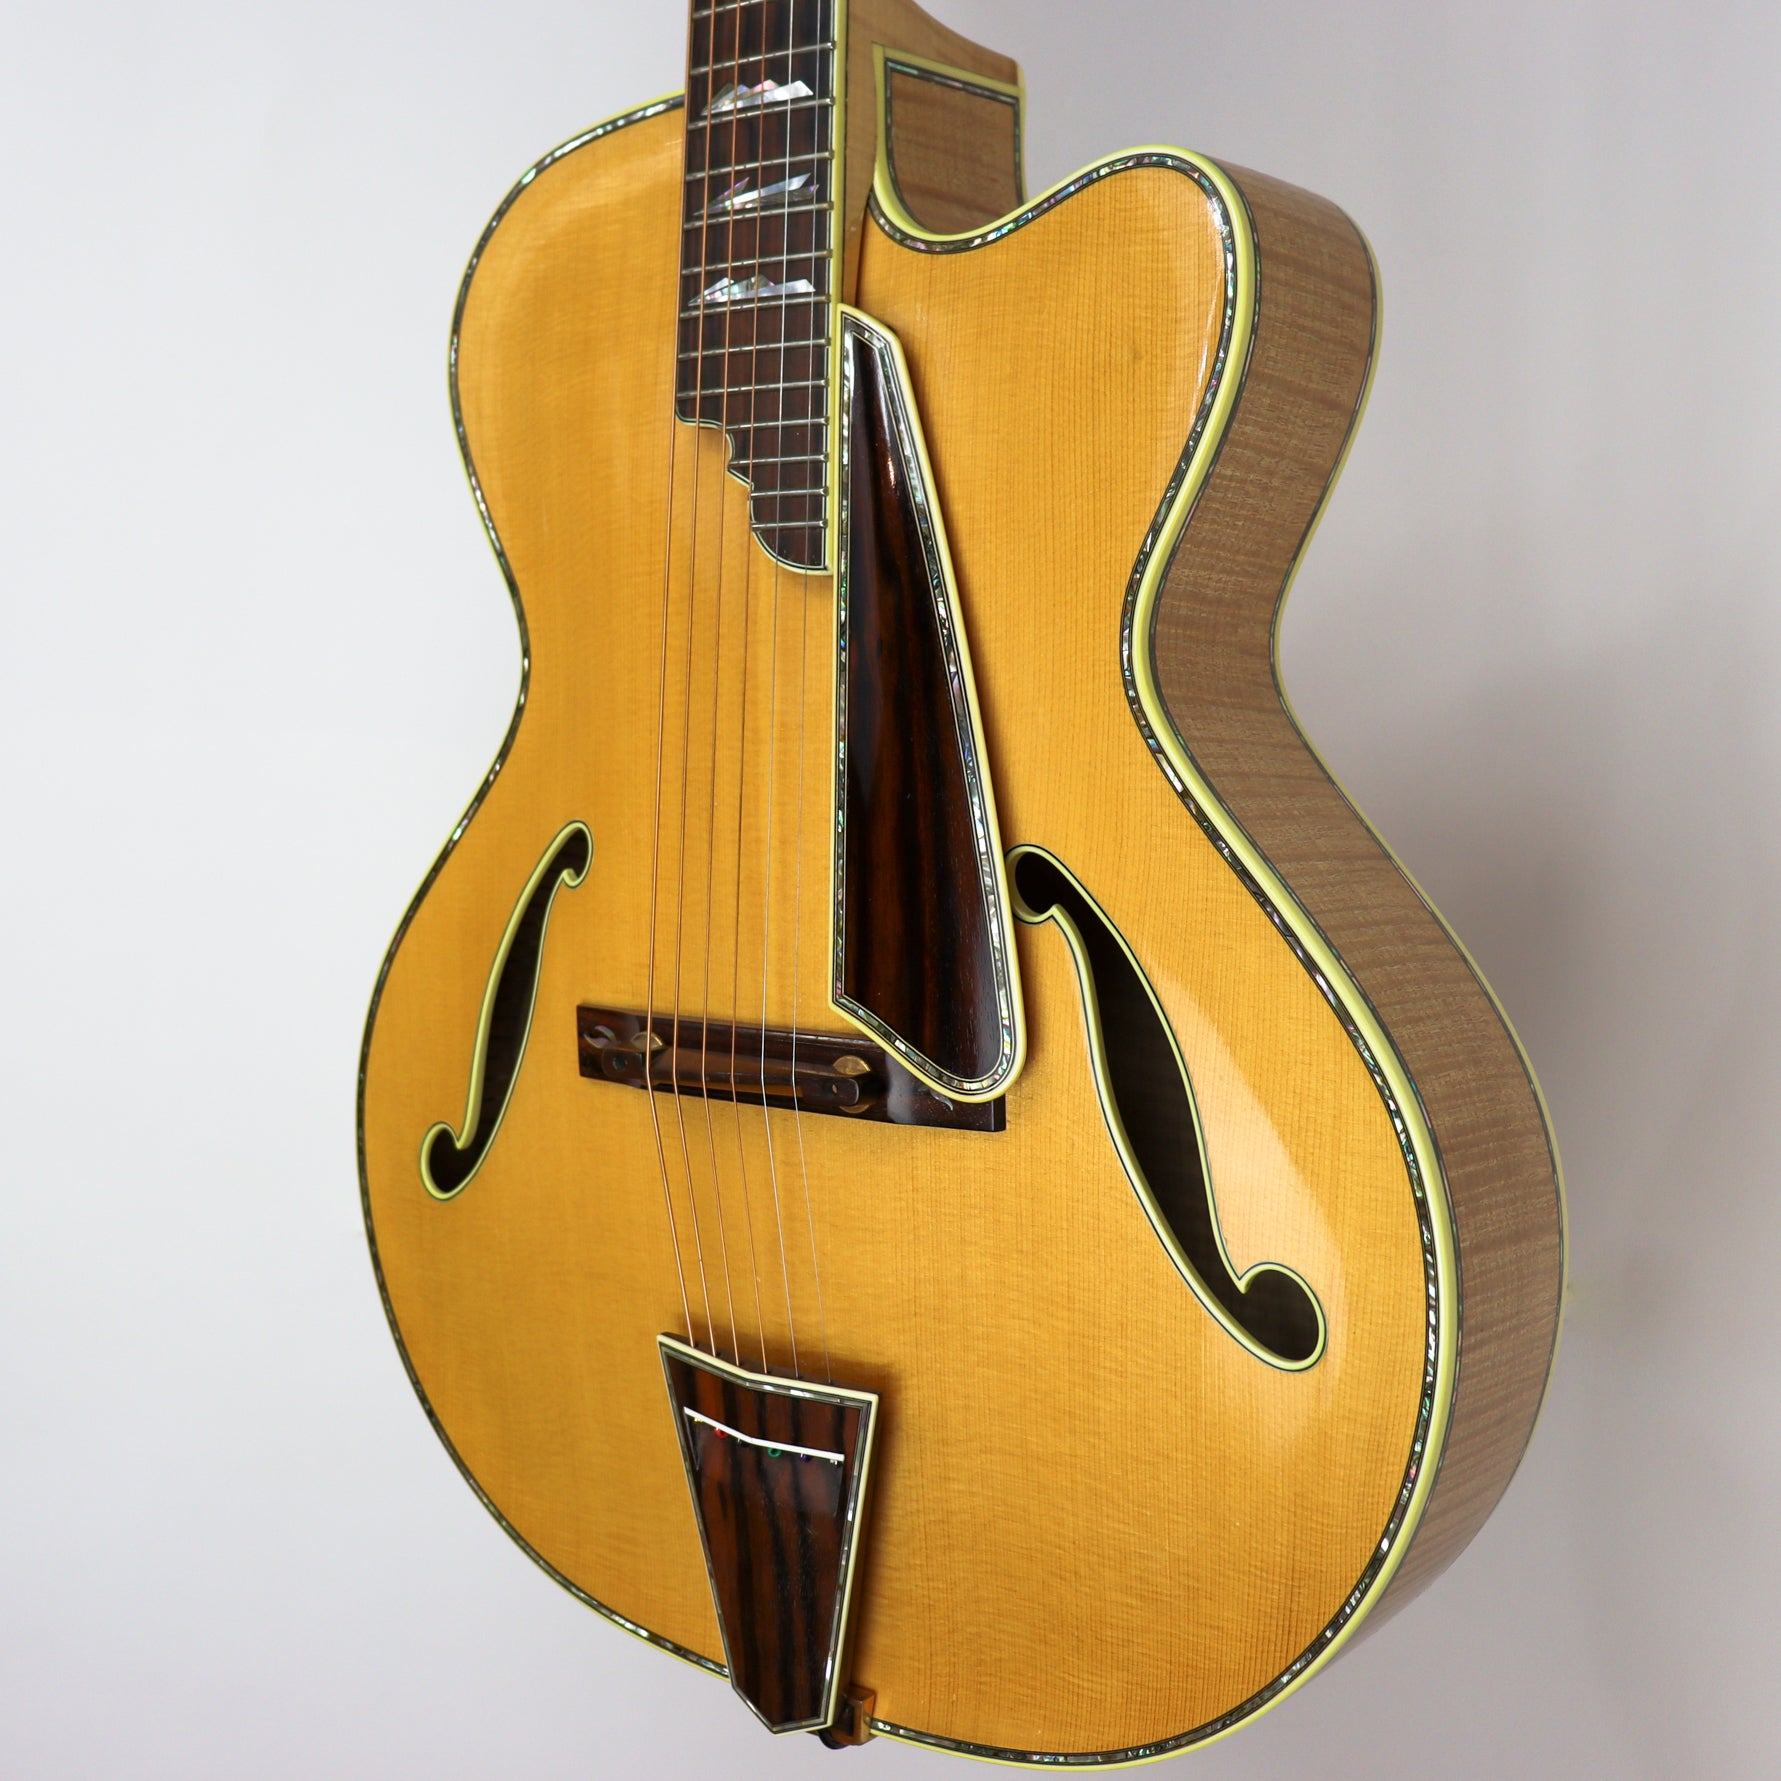 Monteleone 1992 Archtop Guitar #136 With Hardshell Case